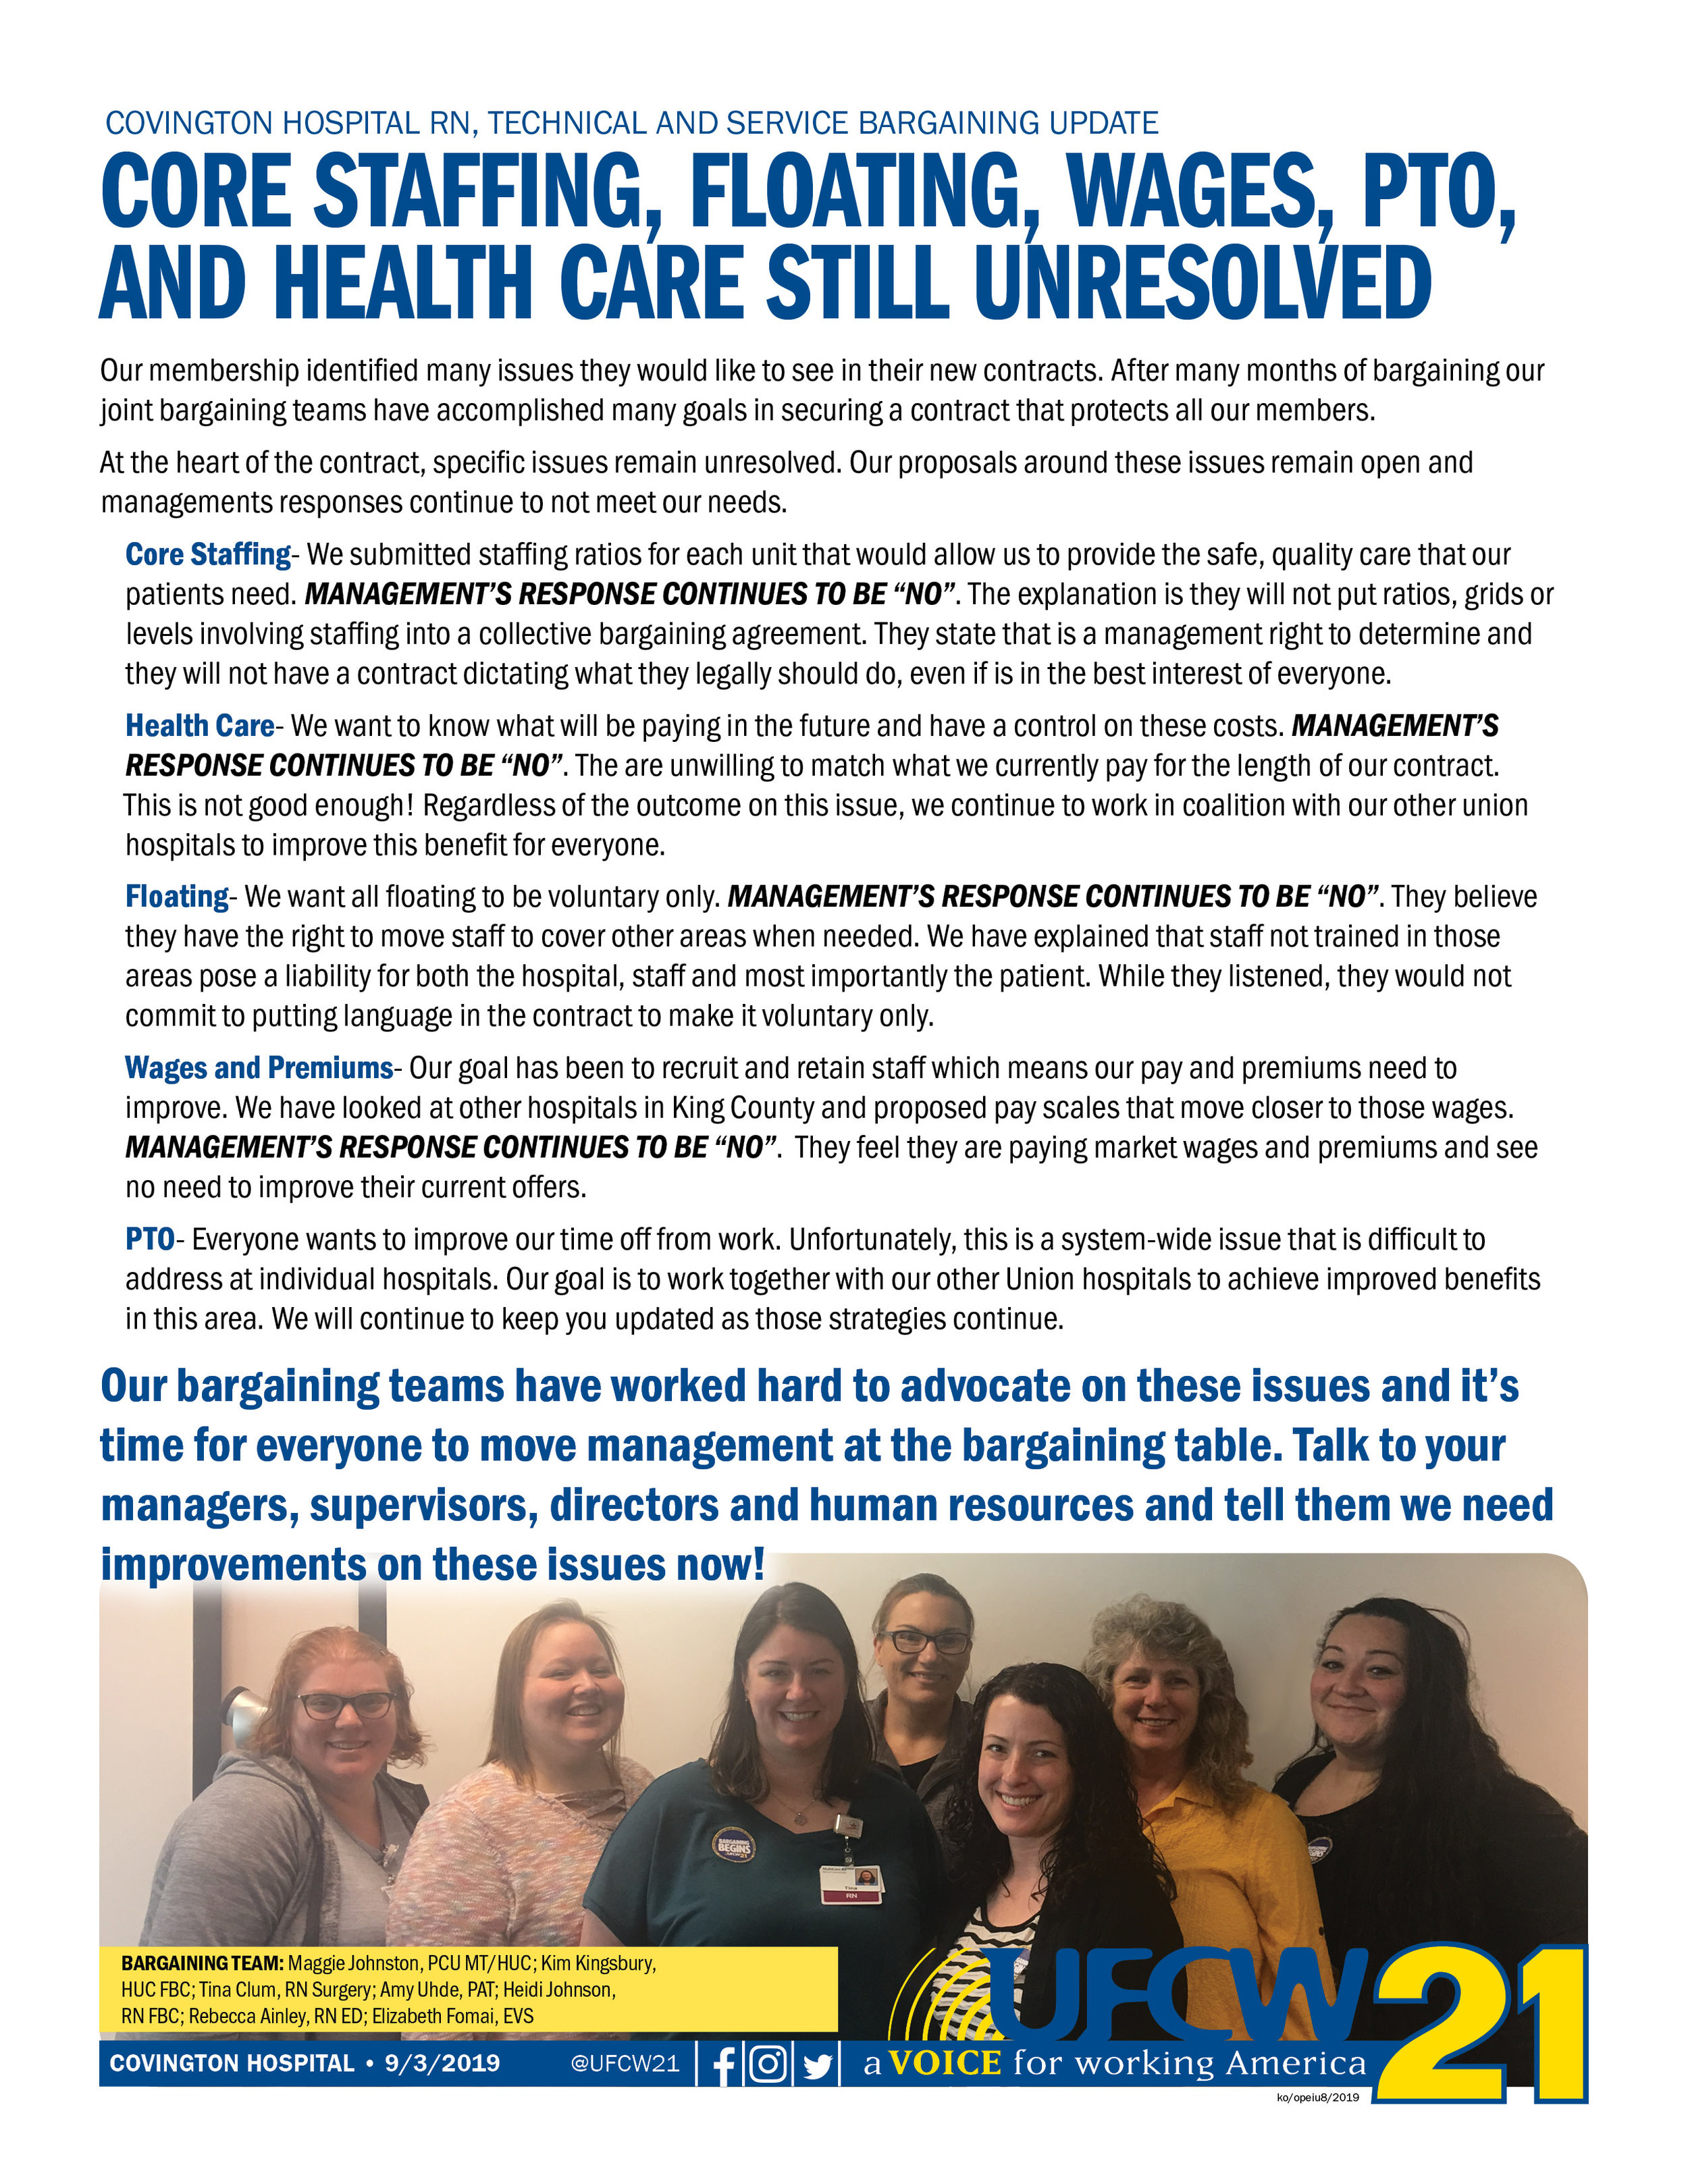 2019 MultiCare Covington Hospital RN Tech and Service Update.jpg